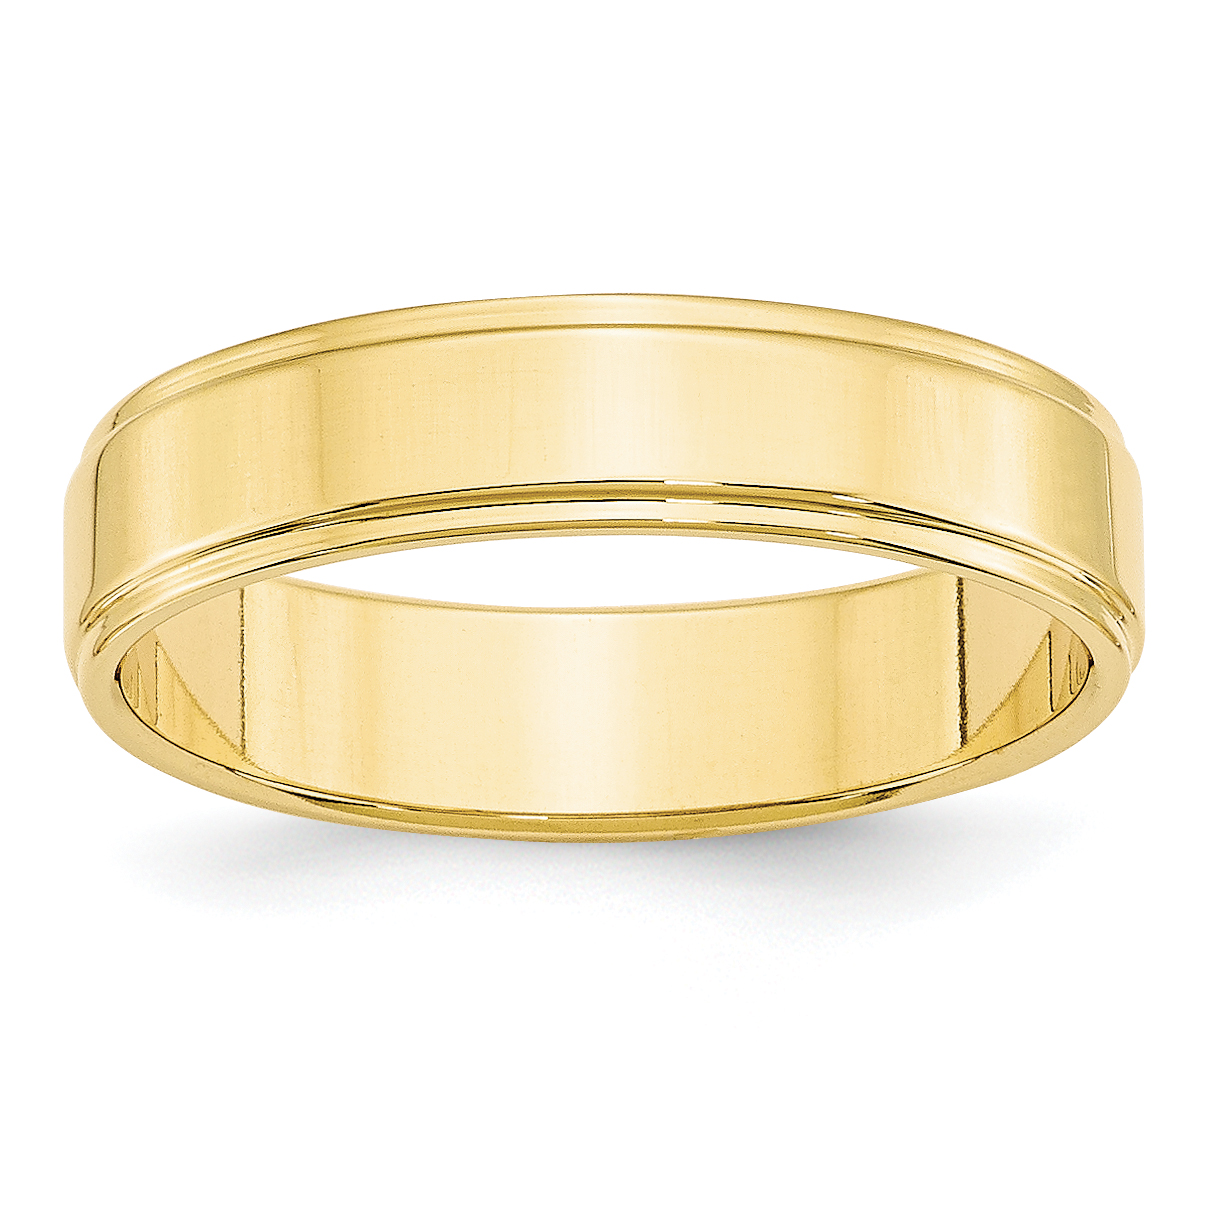 10K Yellow Gold 5mm Flat with Step Edge Band Size 4.5 - image 3 of 3